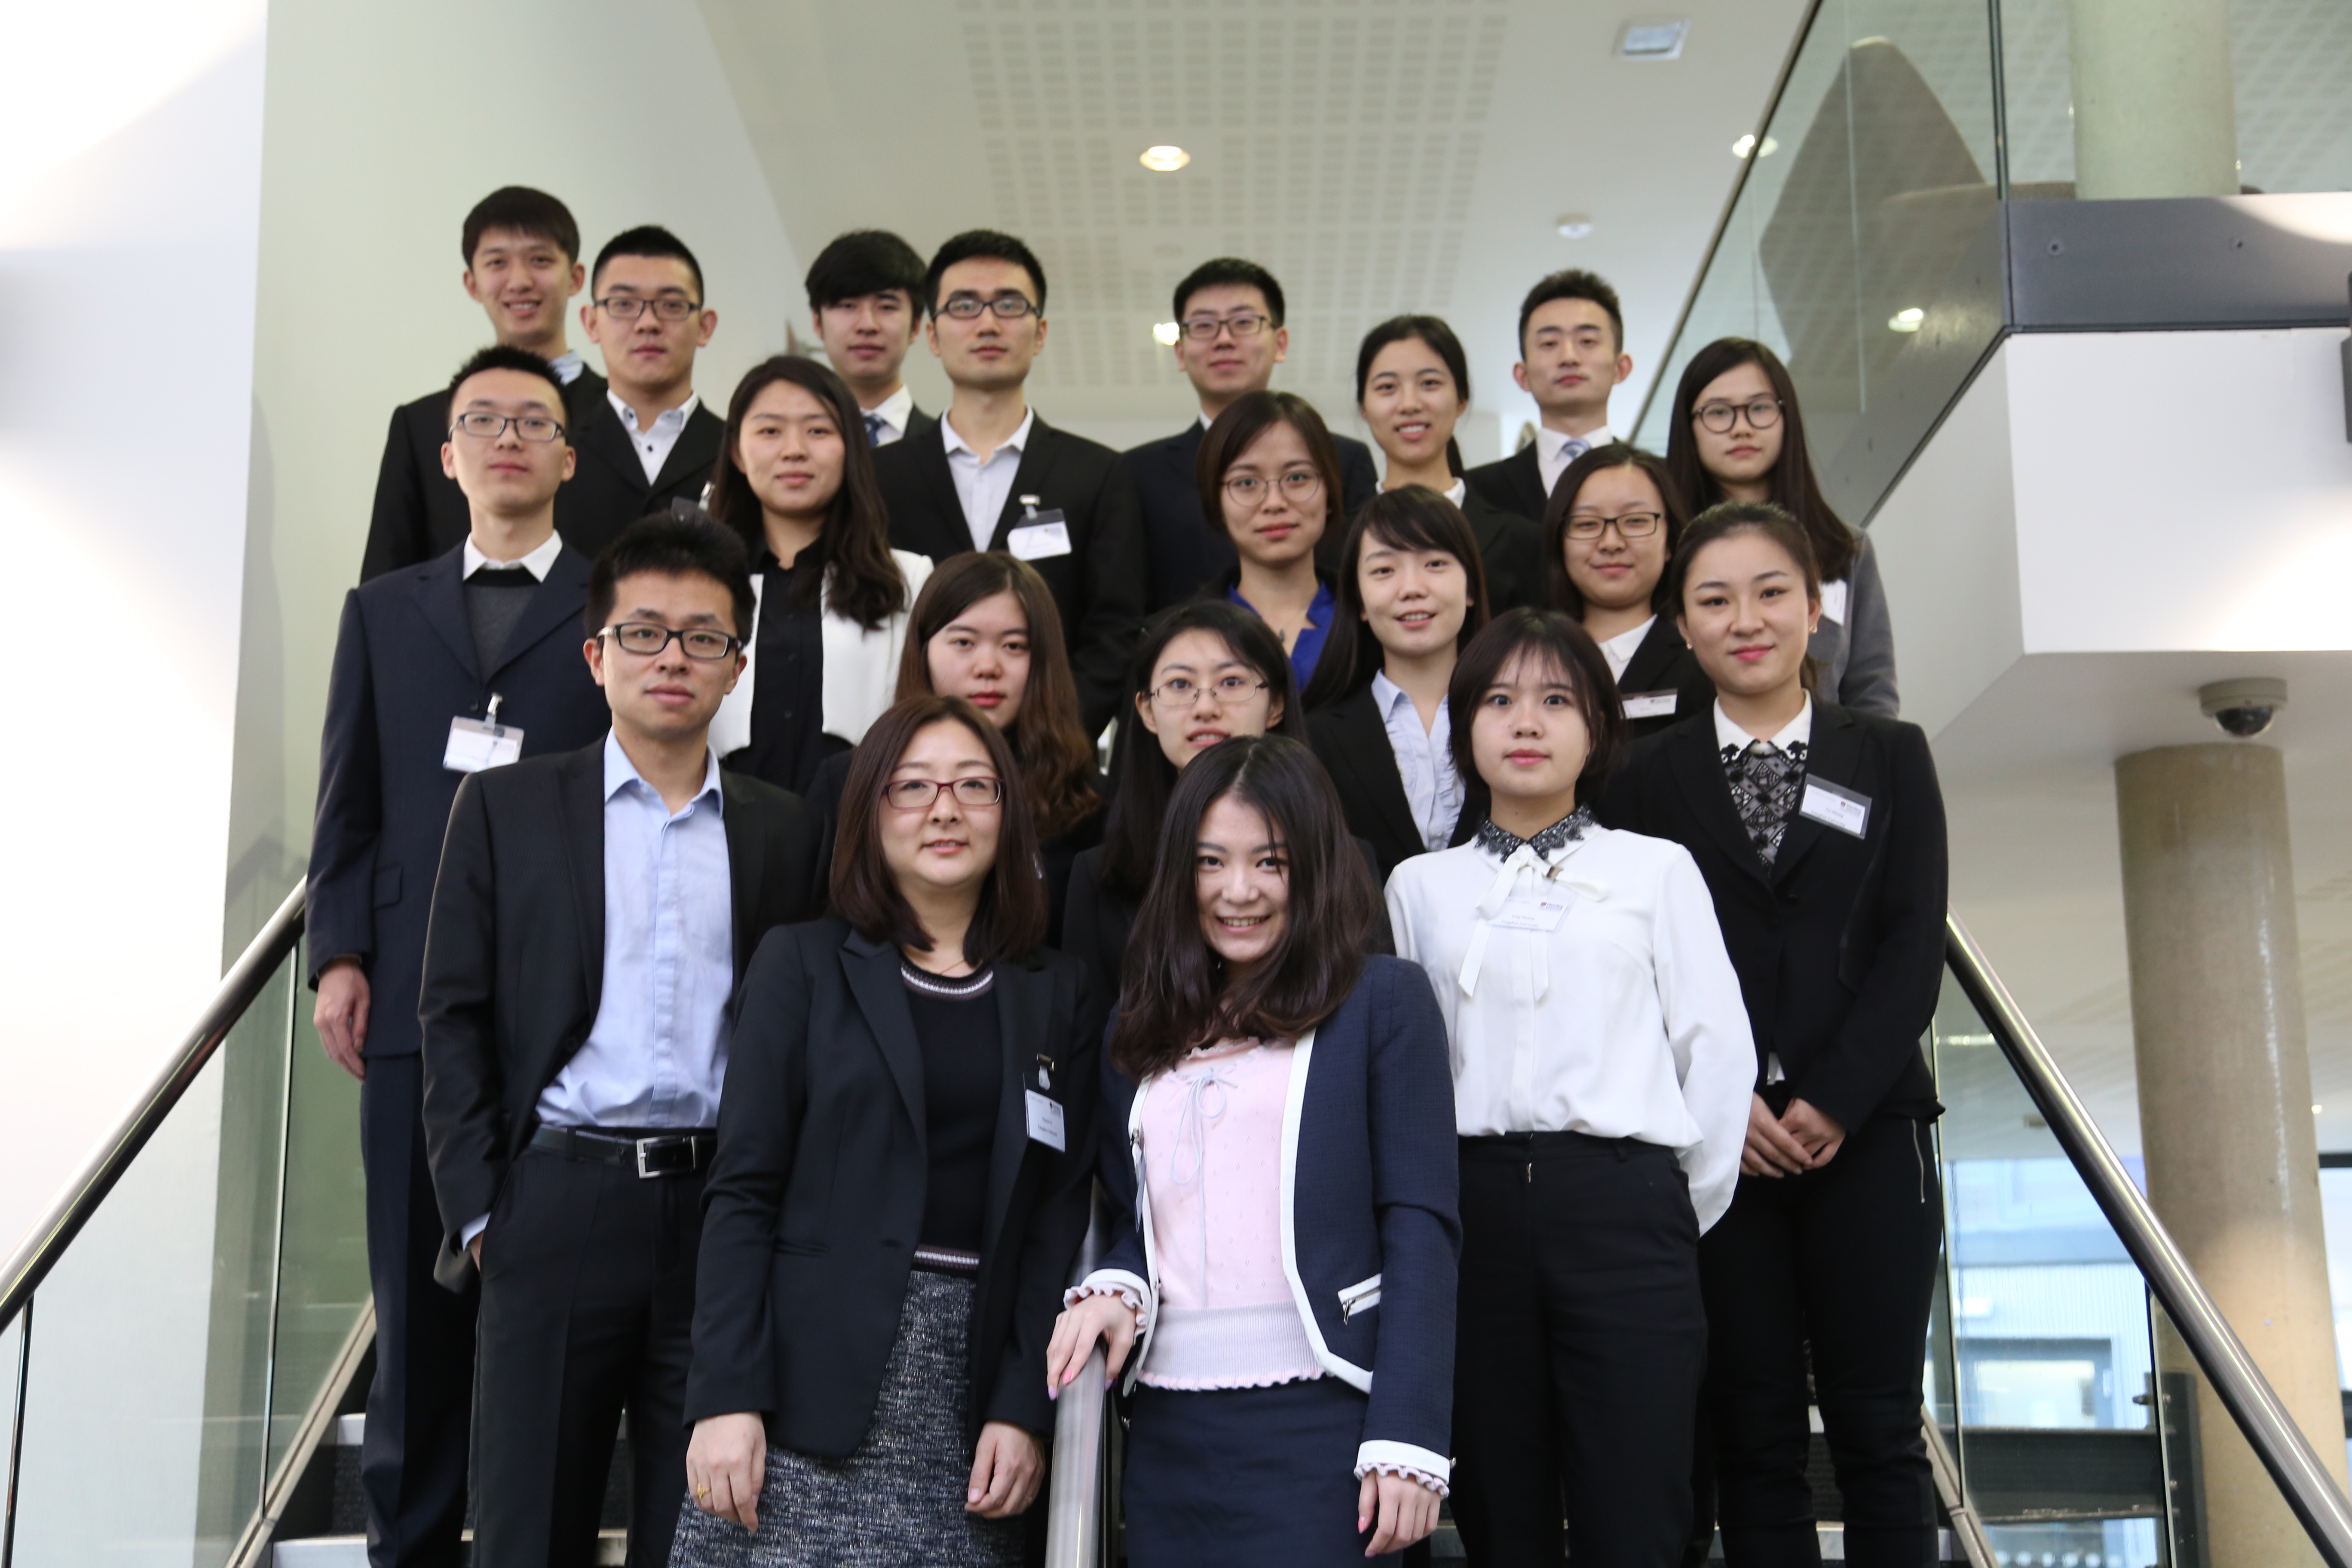 Tsinghua University Students Visit ICMA Centre for Second Year Running